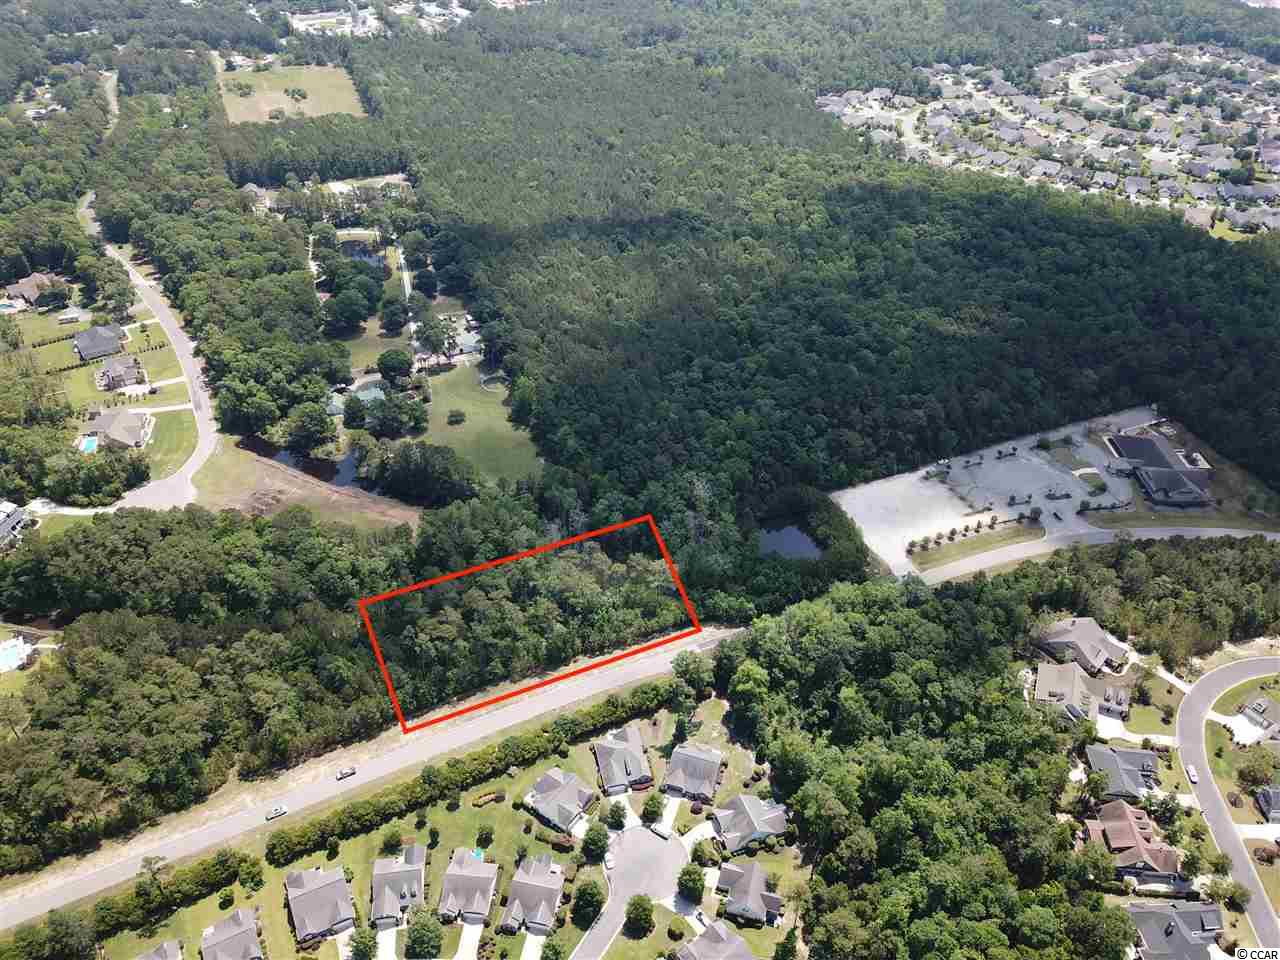 1.84 acres located on Prince Creek Pkwy on the north side of Christ Church.  394 ft frontage on Prince Creek Pkwy.   PDD zoning allows for multiple uses.  Prince Creek is the premier master-planned community in Murrells Inlet. Permanent population:  7,689 (1 mile), 29,512 (3 miles), and 57,684 (5 miles).